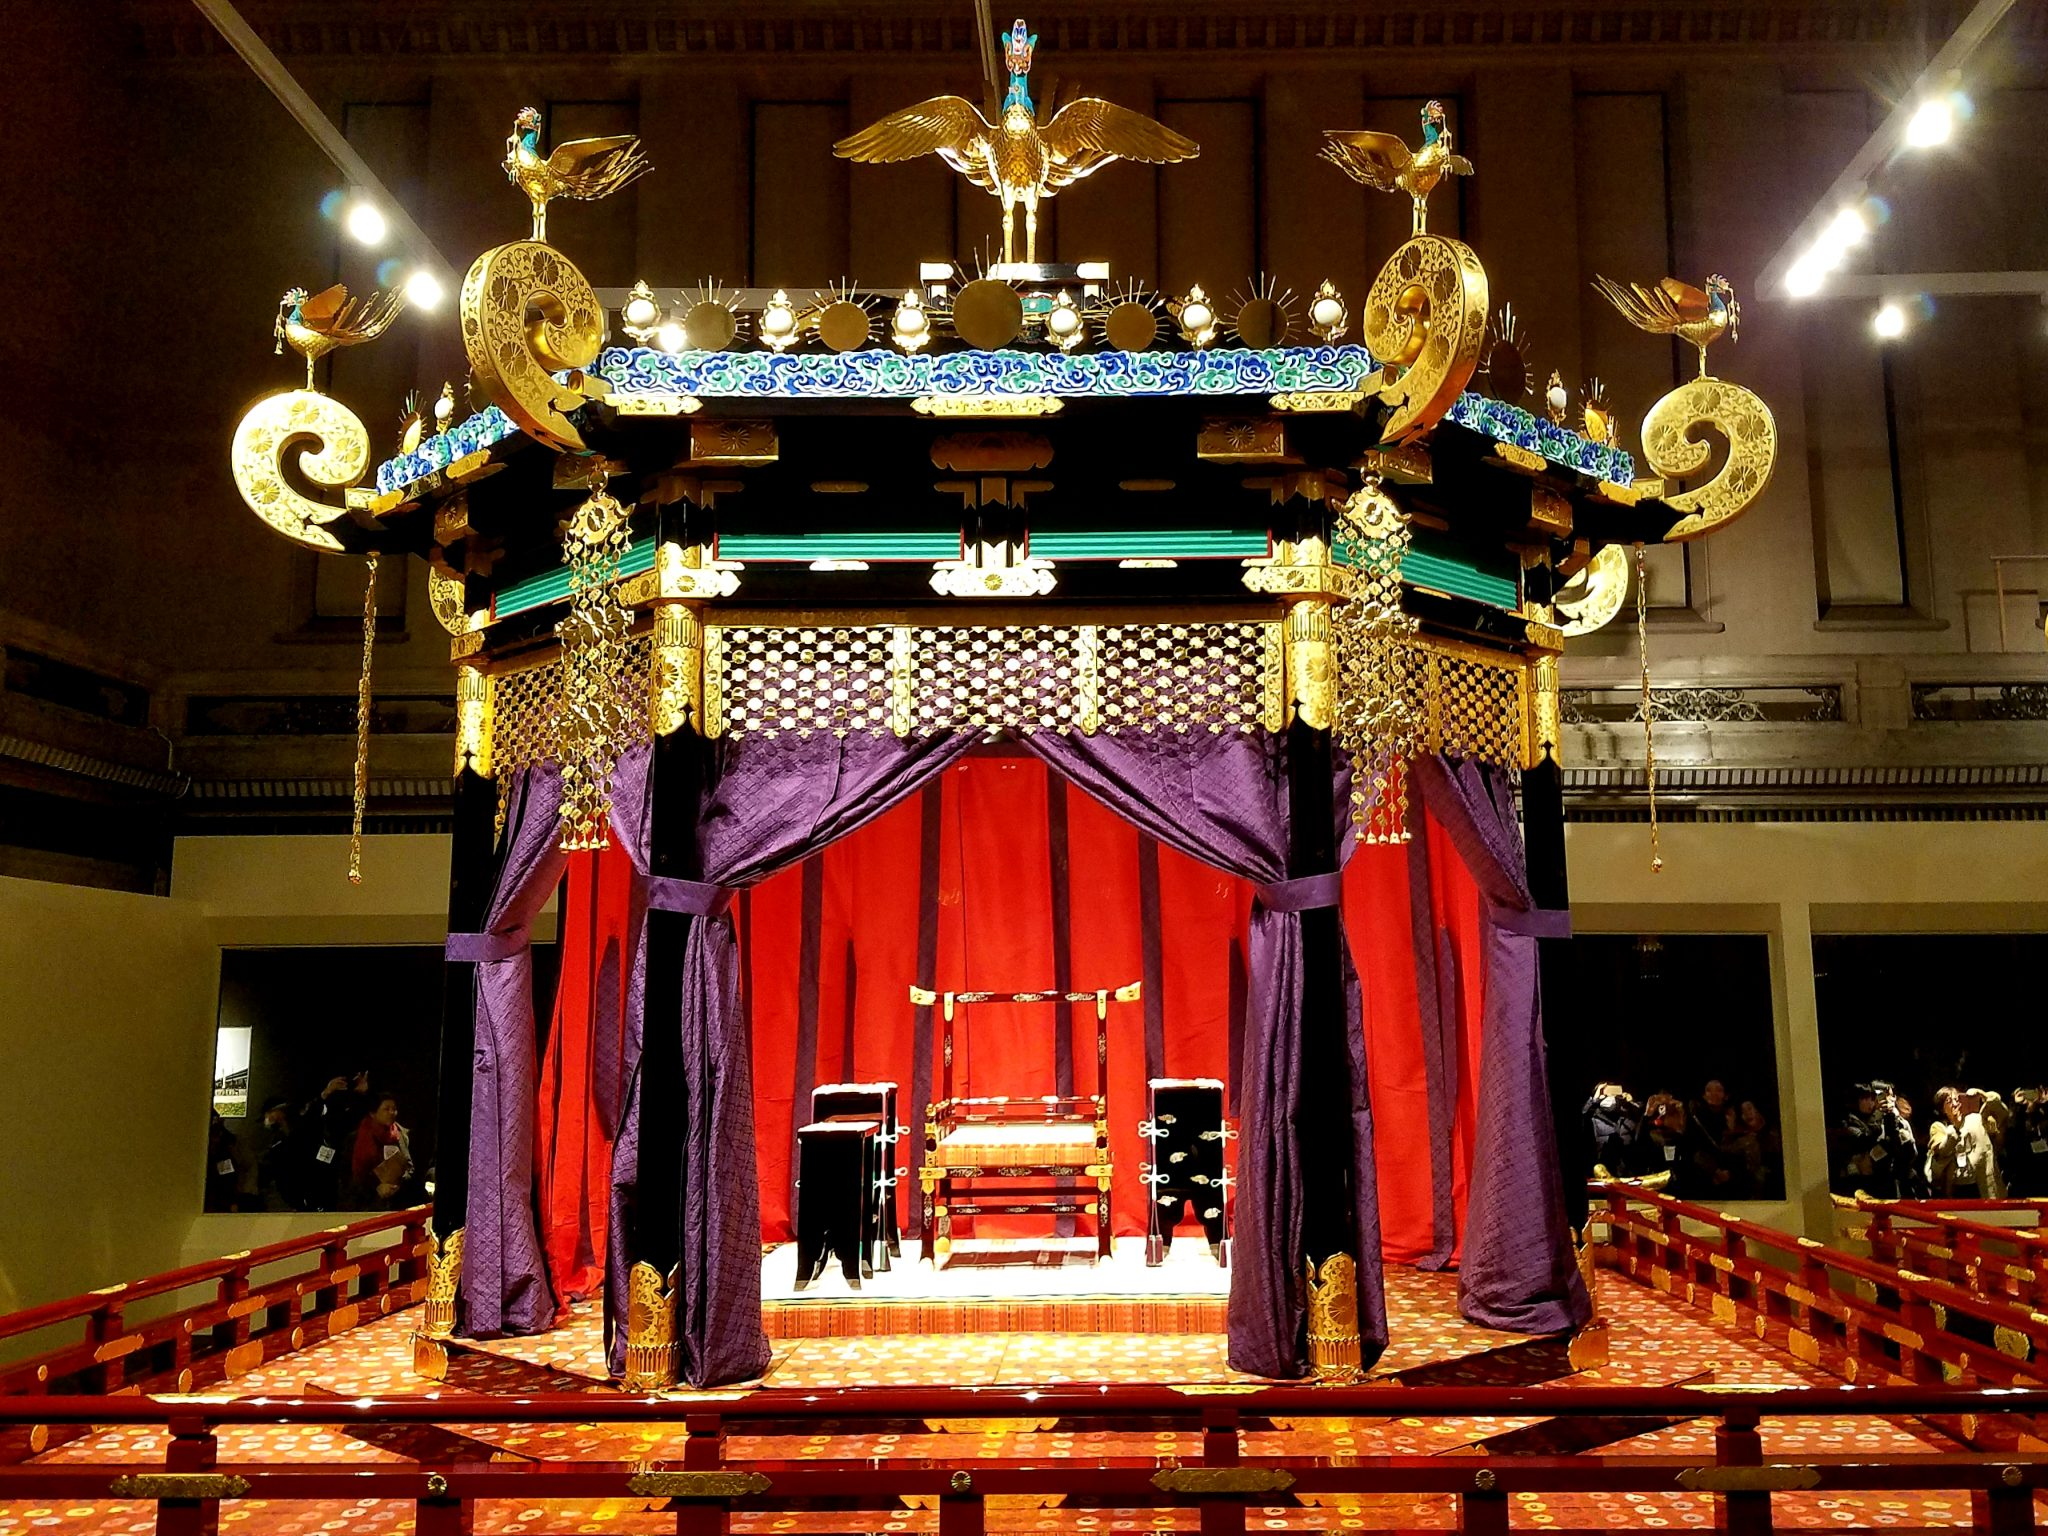 The Takamikura (Imperial Throne) used in the Sokuirei-Seiden-no-gi (Ceremony of the Enthronement of His Mejesty the Emperor at the Seiden)